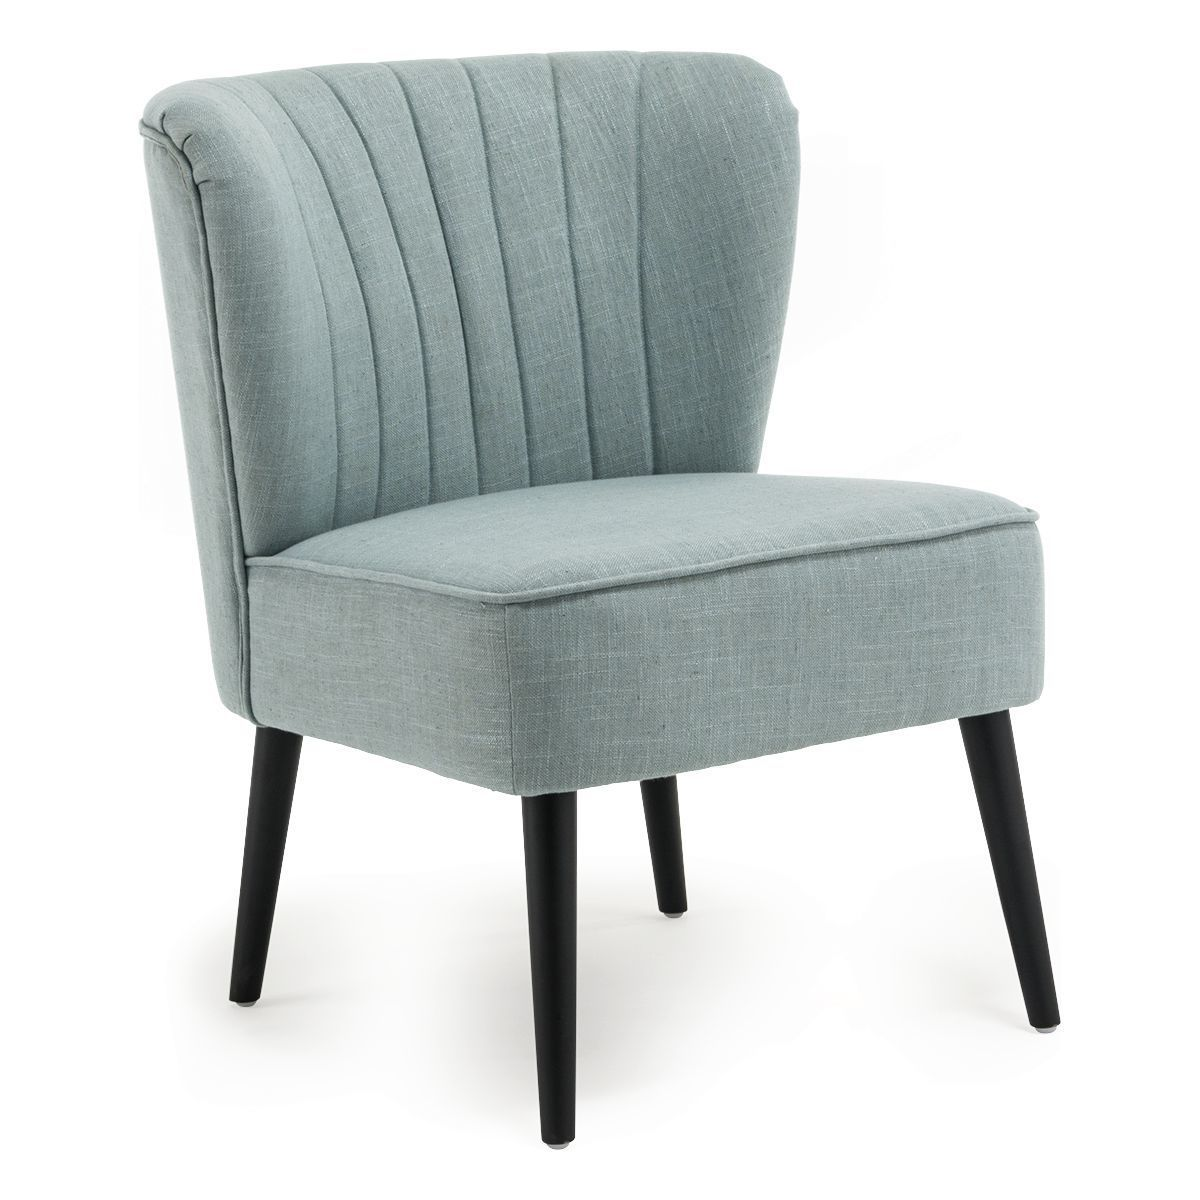 Retro Sessel Bilder Retro Sessel Aus Polyester Sypialnia Chair Accent Chairs Und